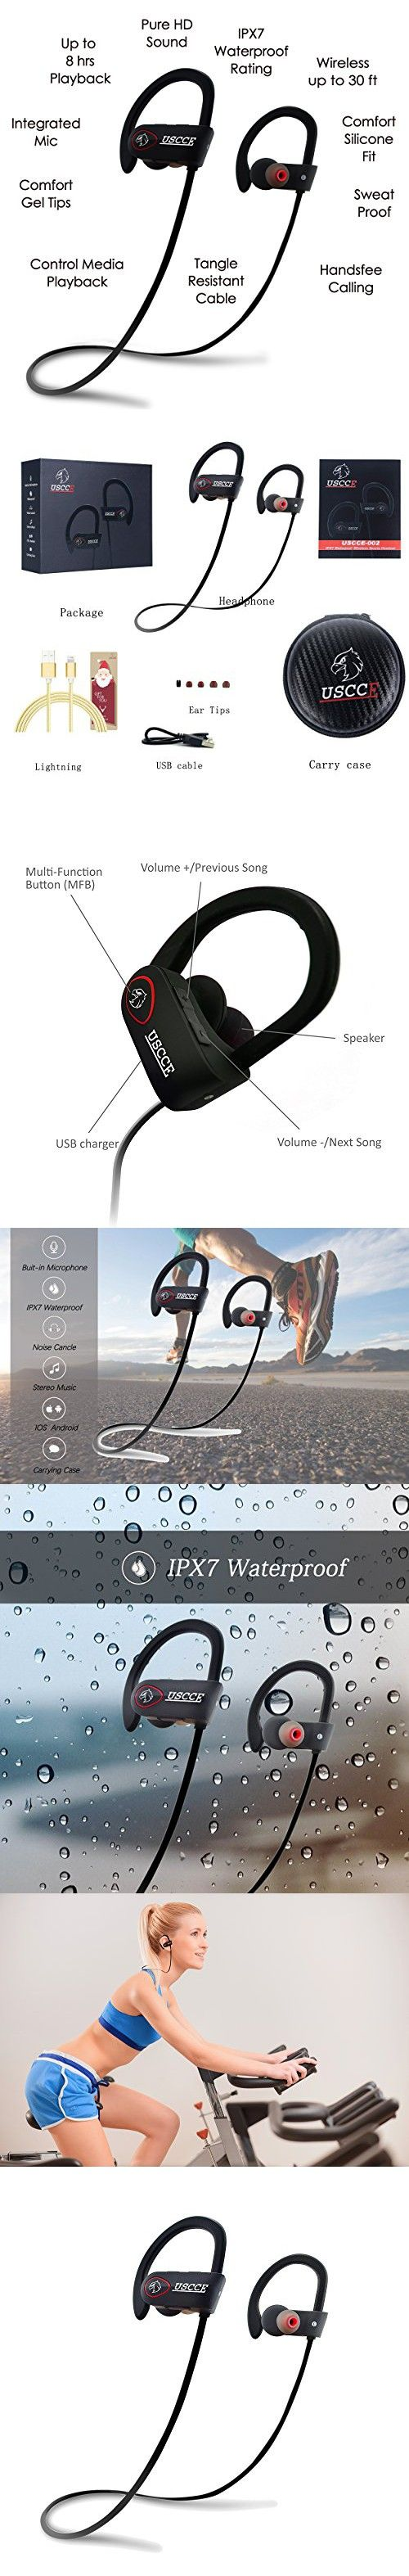 USCCE Bluetooth Headphones, Best Wireless Sports Earphones with Mic IPX7 Sweat and Waterproof HD Stereo Earbuds, Noise Cancelling 8 Hr Playtime for Gym Running Workout Secure Fit Headsets (Black Red)